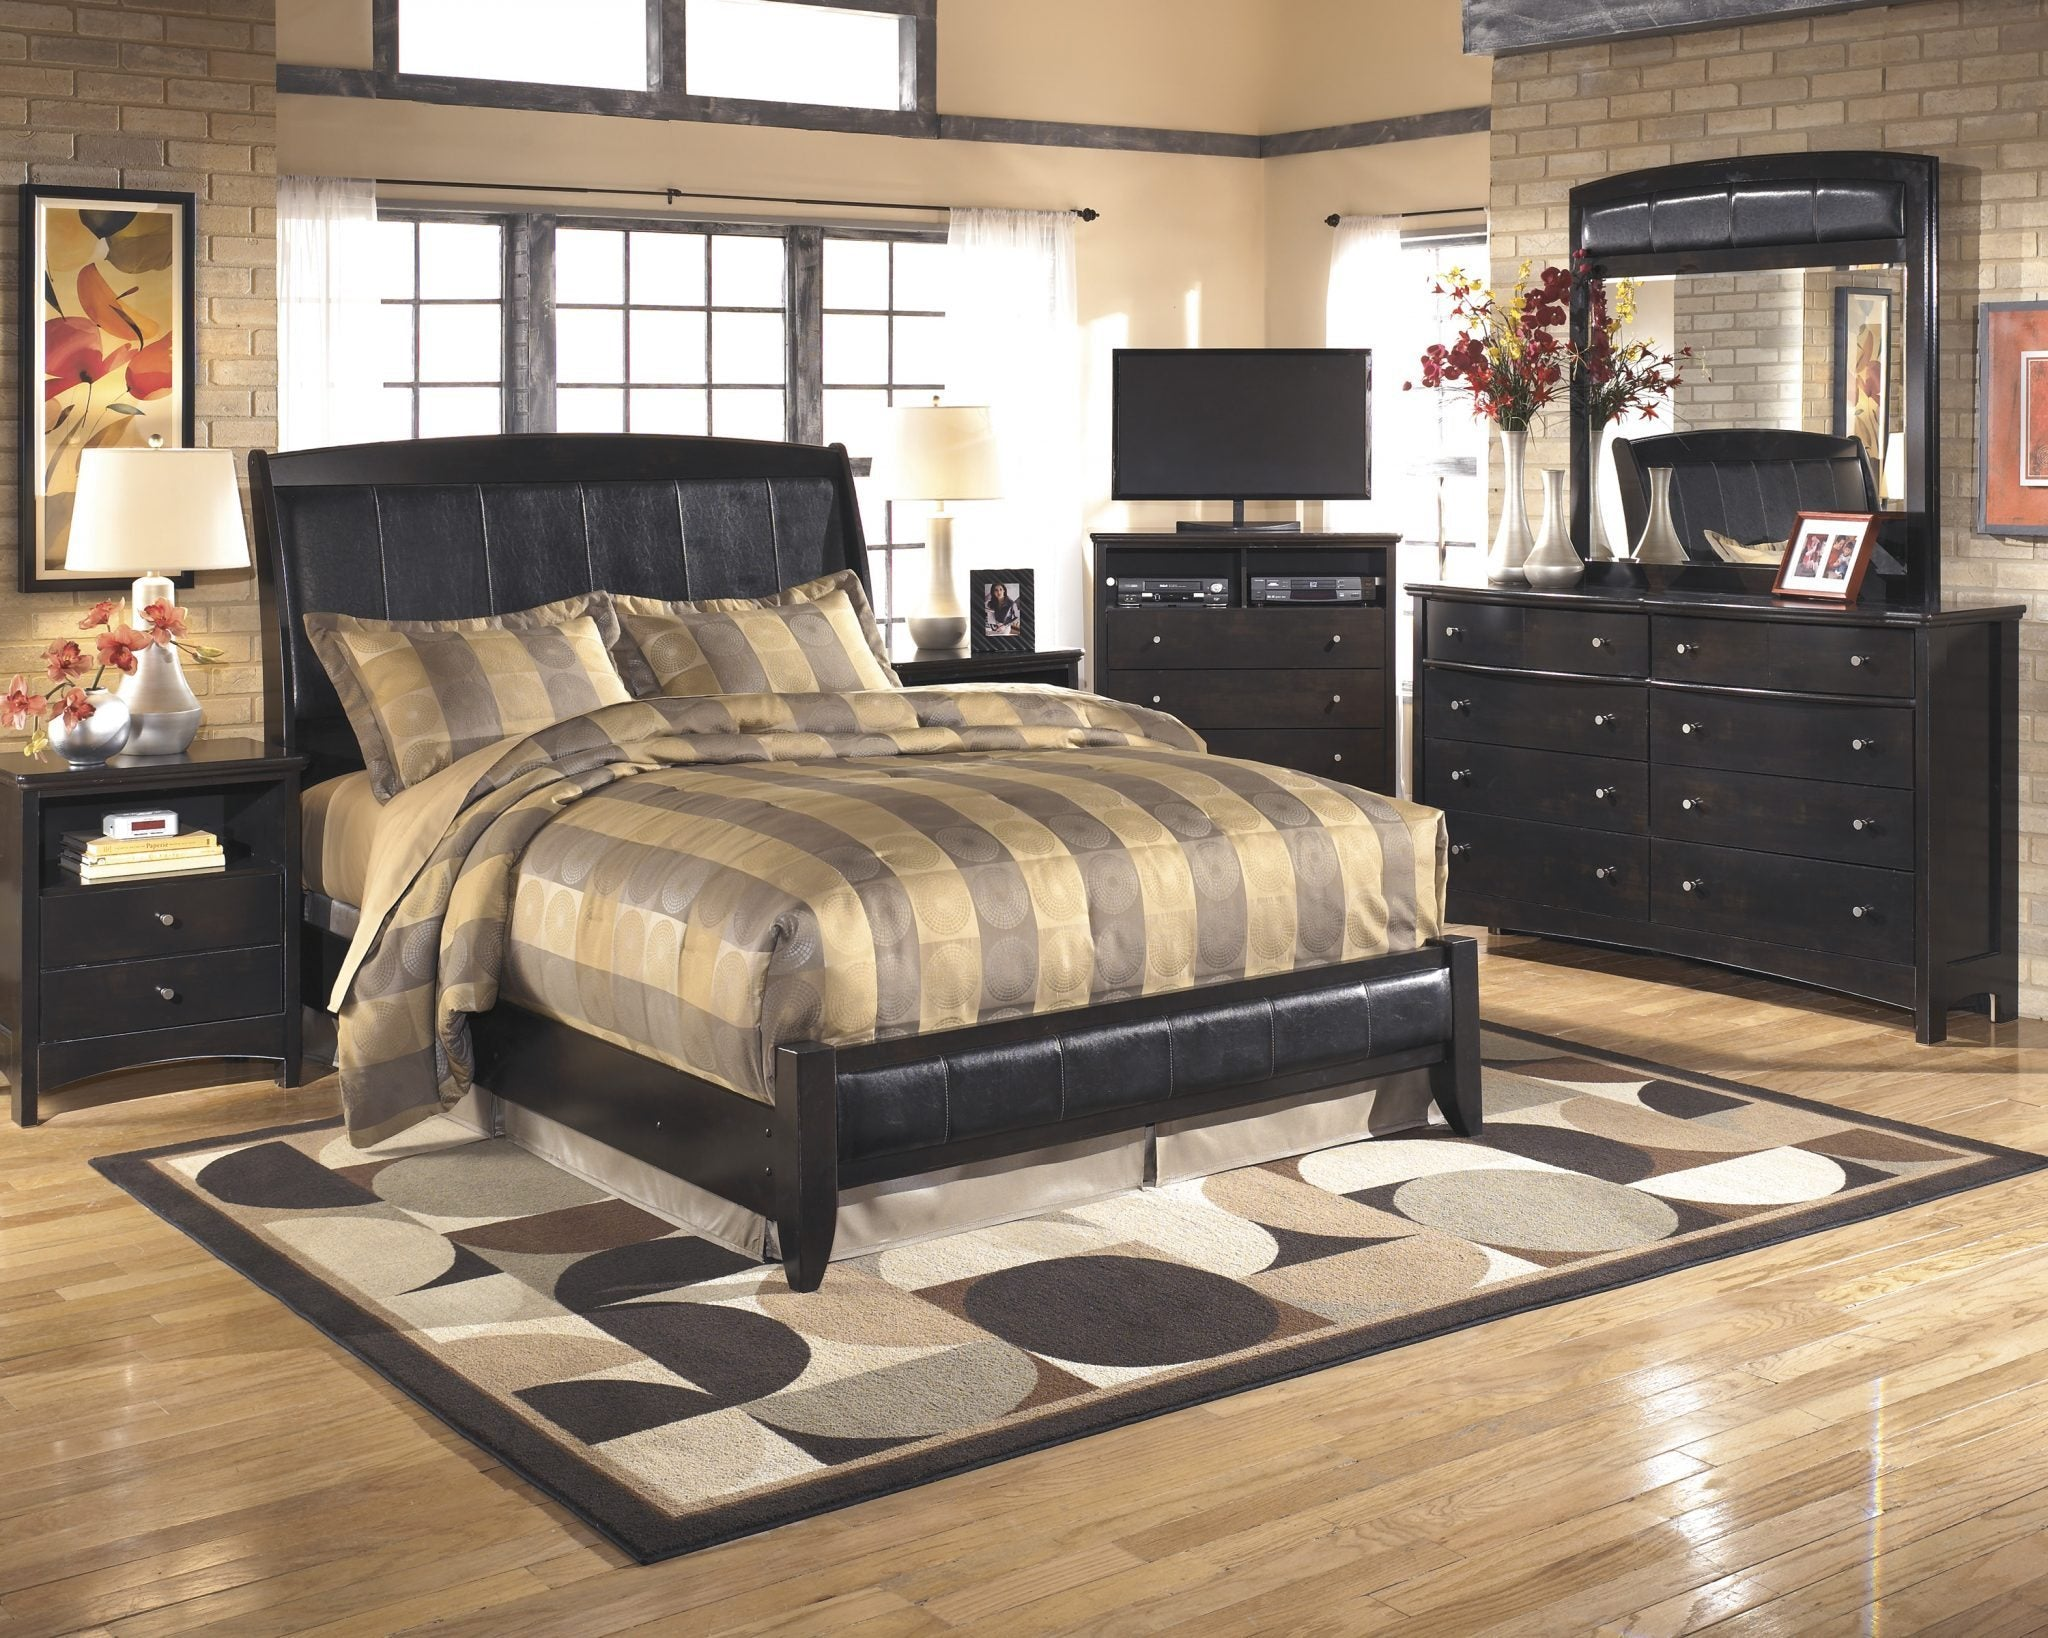 Ashley B208 Harmony Queen Bed